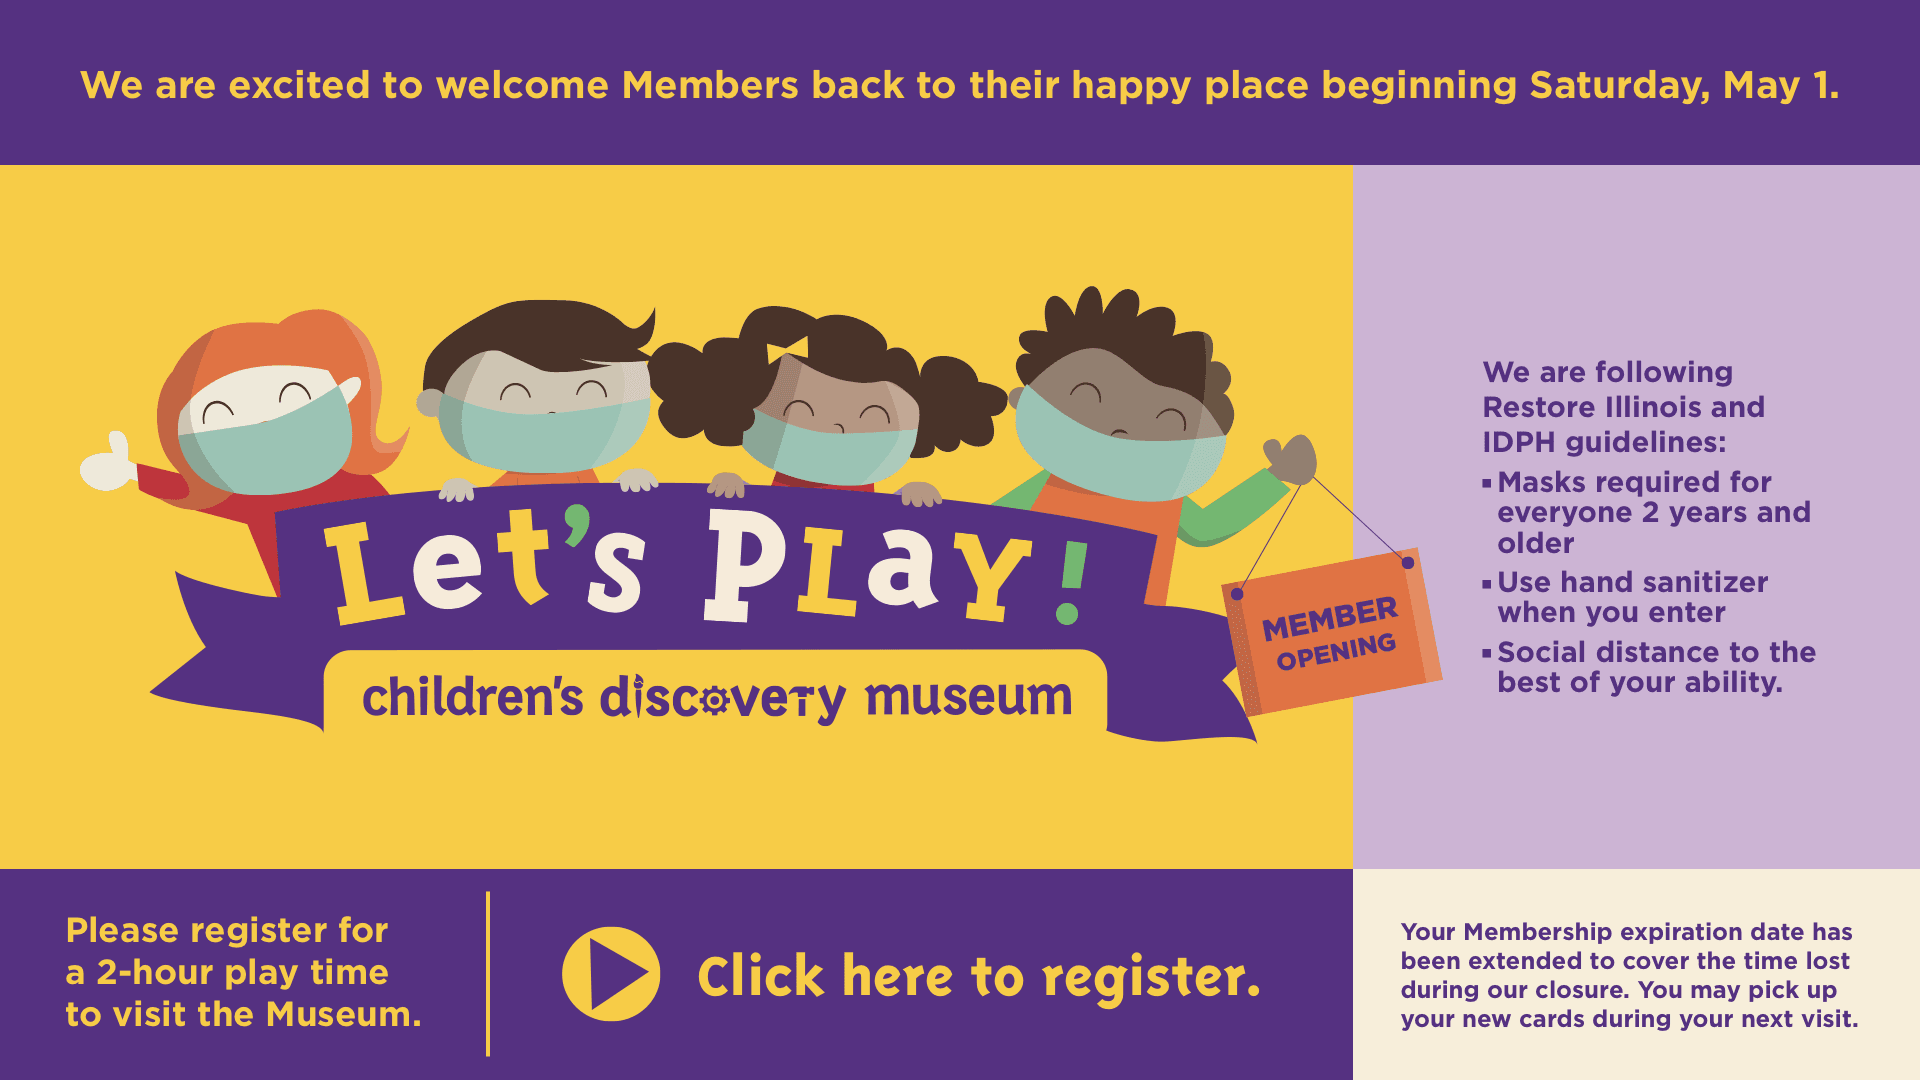 Let's Play Museum Reopening for members May 1